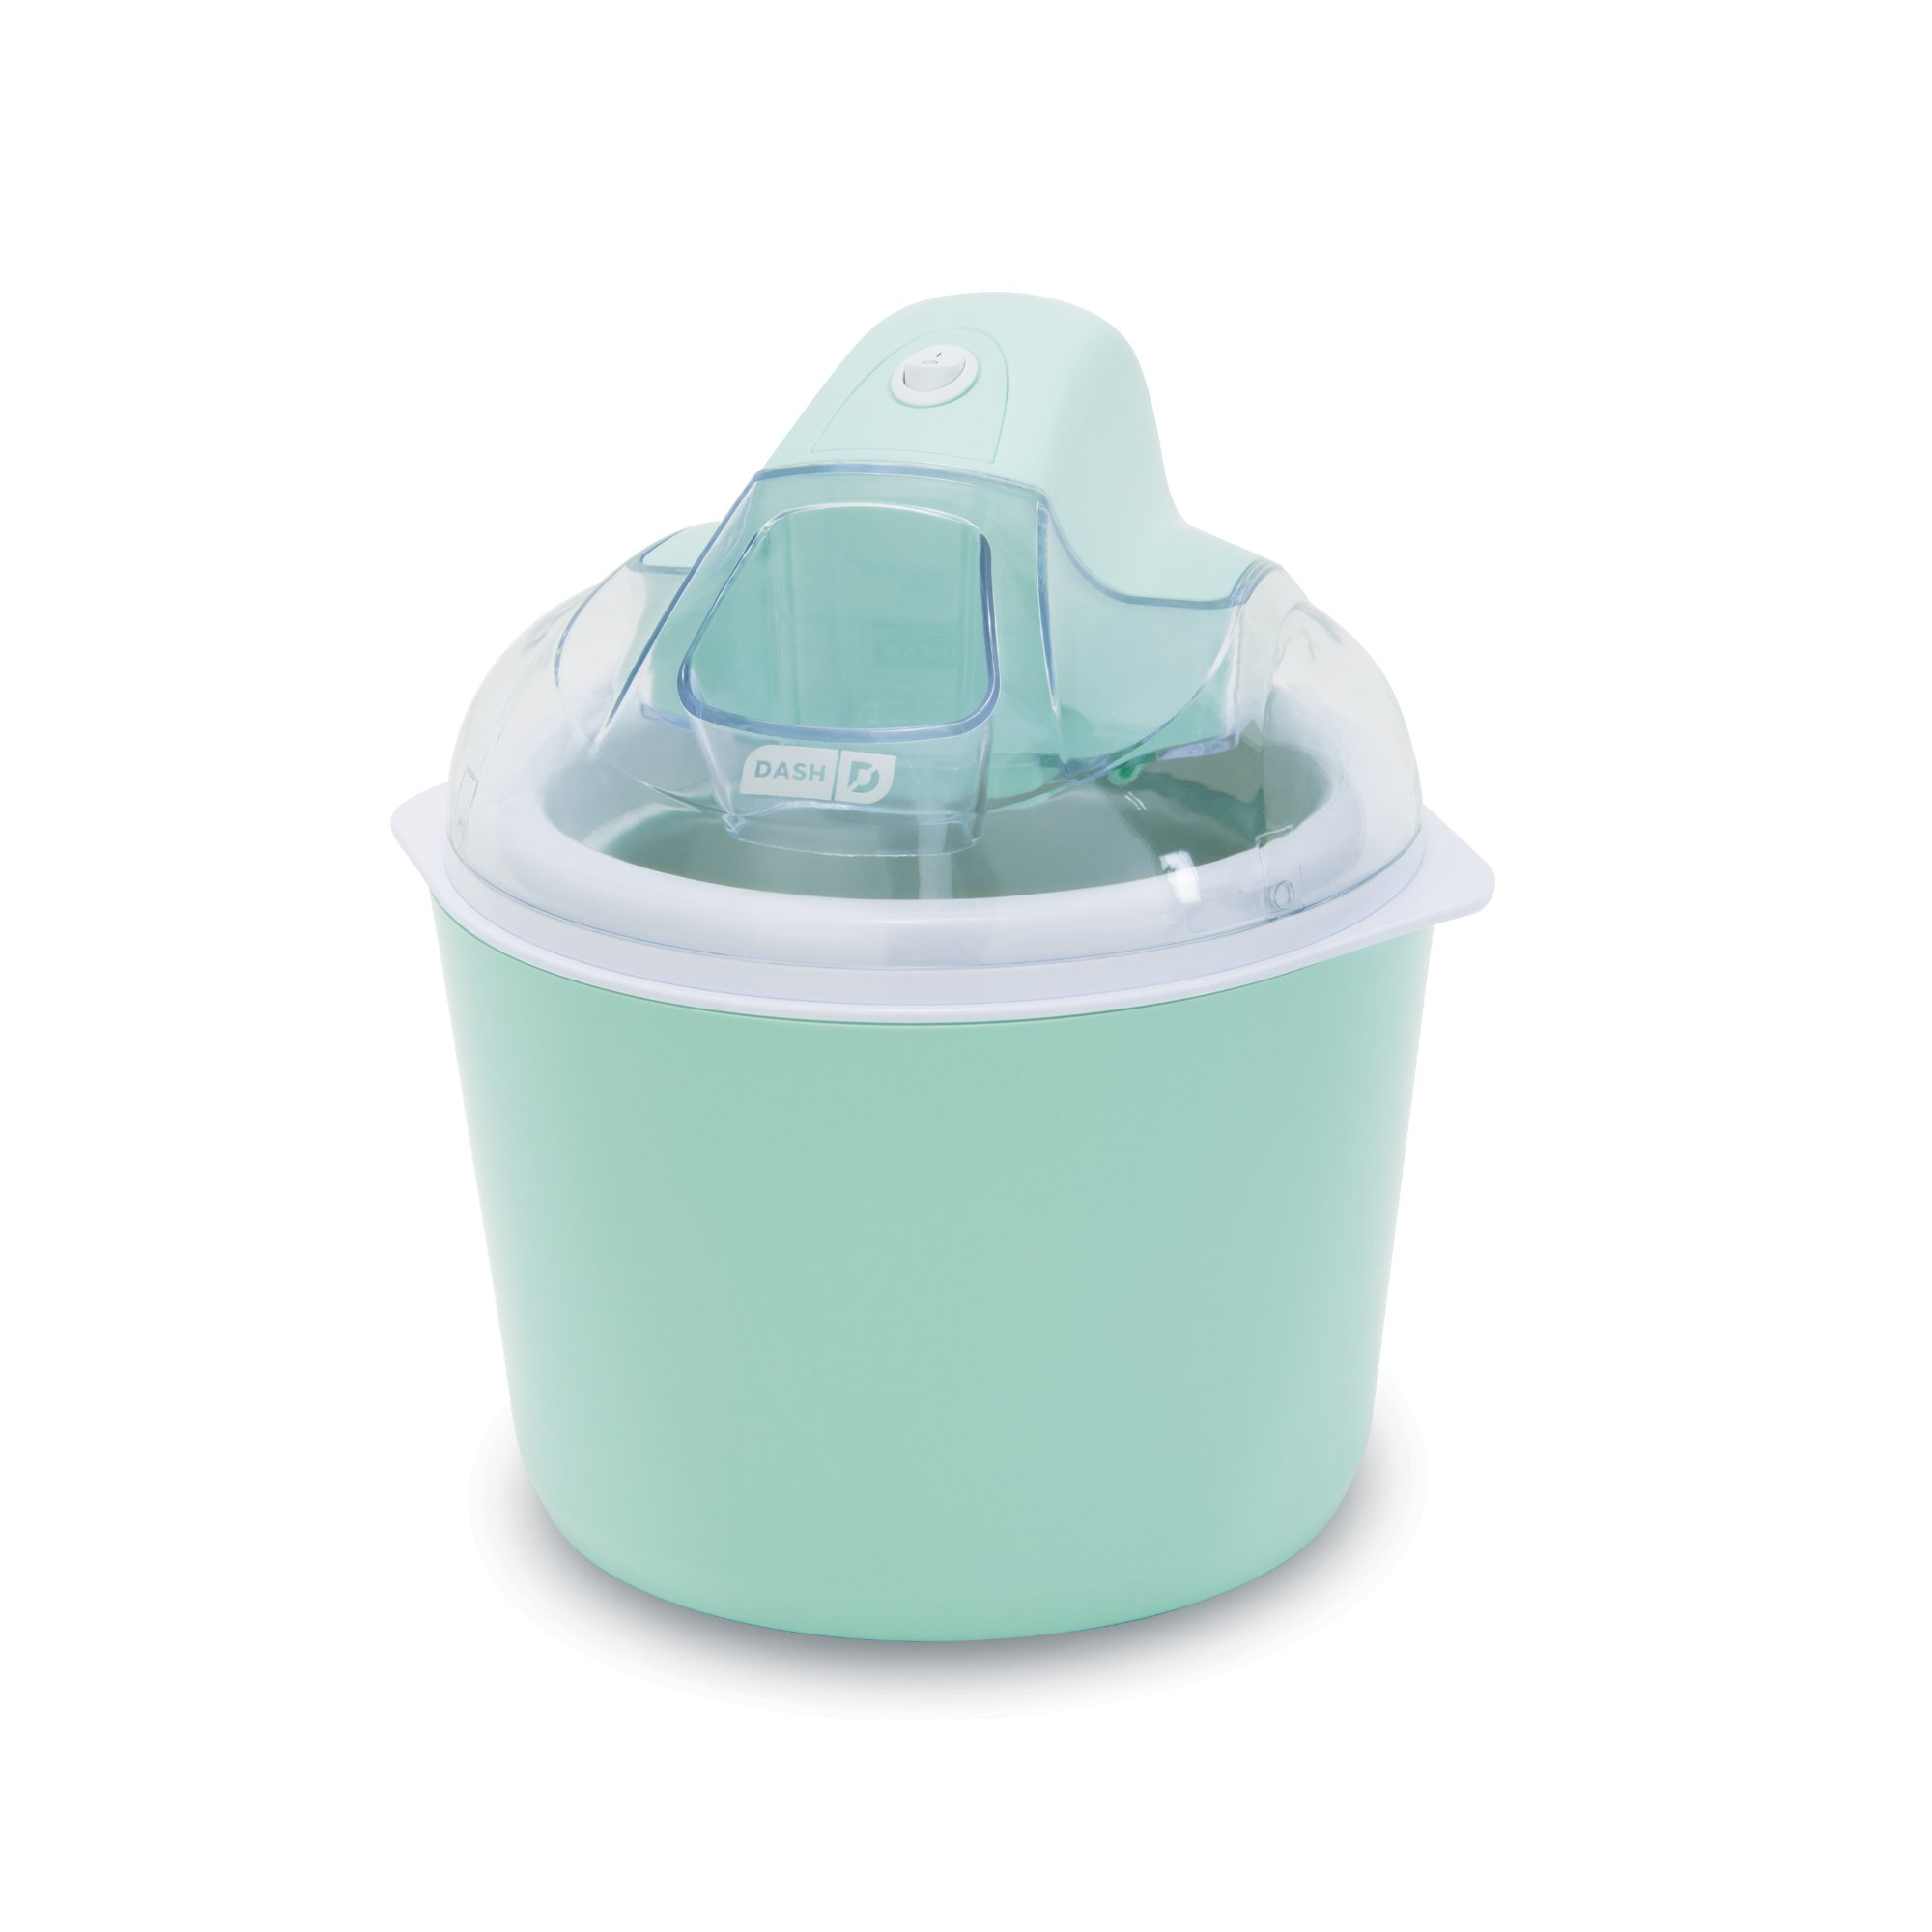 DASH DIC001AQ Deluxe Ice Cream Frozen Yogurt and Sorbet Maker with Easy Ingredient Spout, Double-Walled Insulated Freezer Bowl and Free Recipes, 1 quart, Aqua